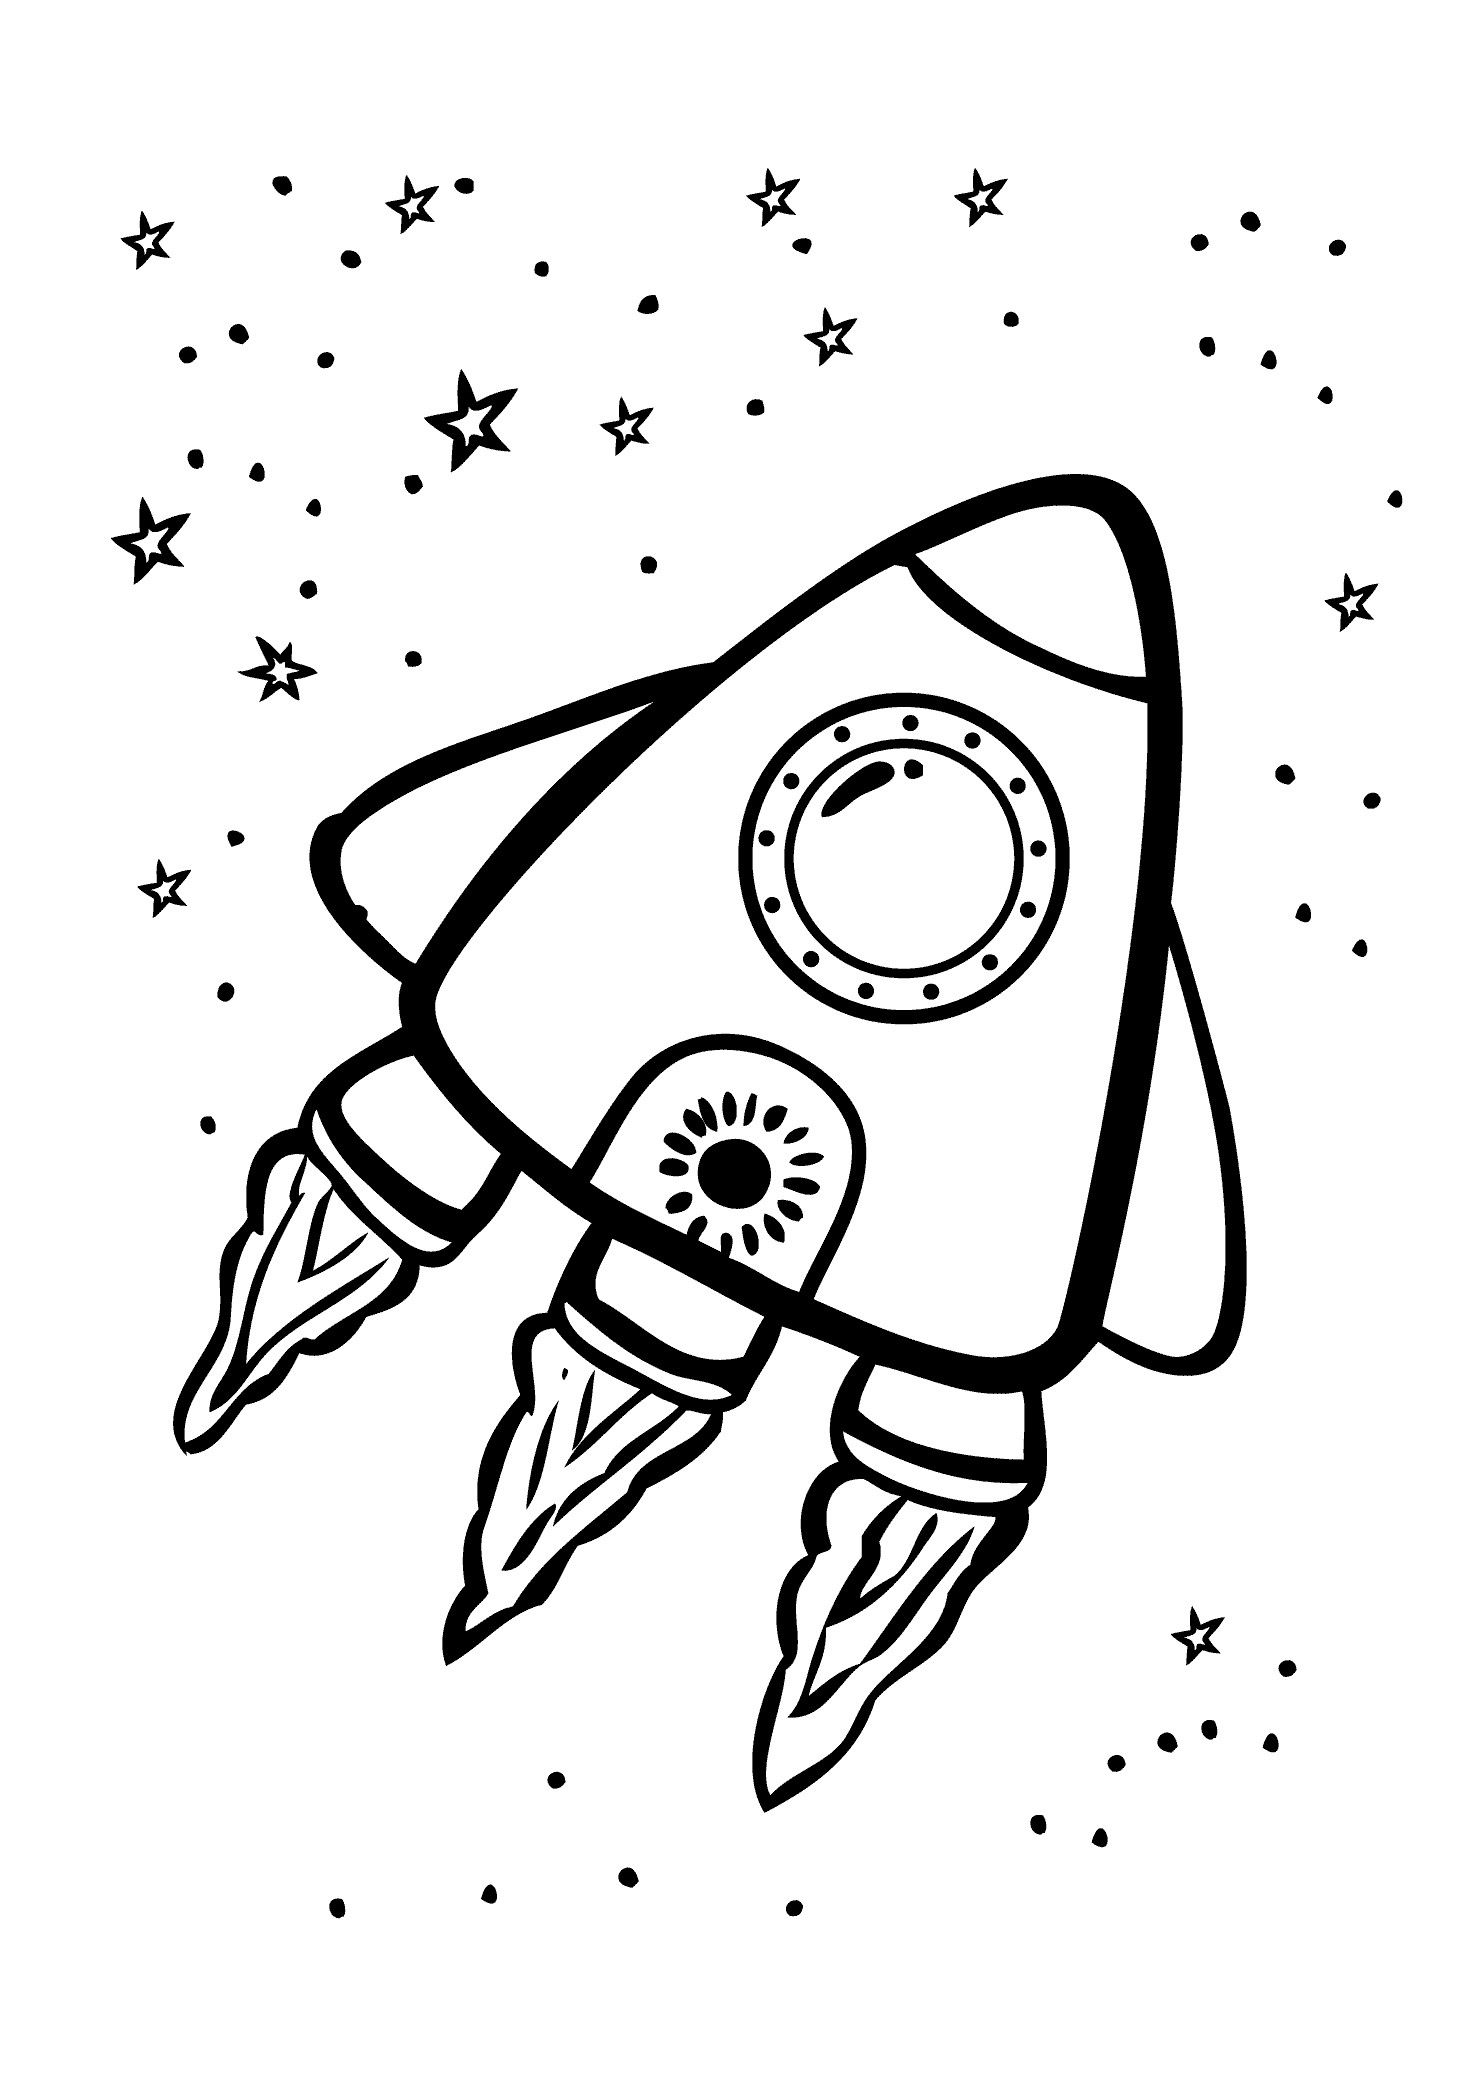 25 Coloring Pages Cleaning Up Space Coloring Pages Summer Coloring Pages Monster Coloring Pages